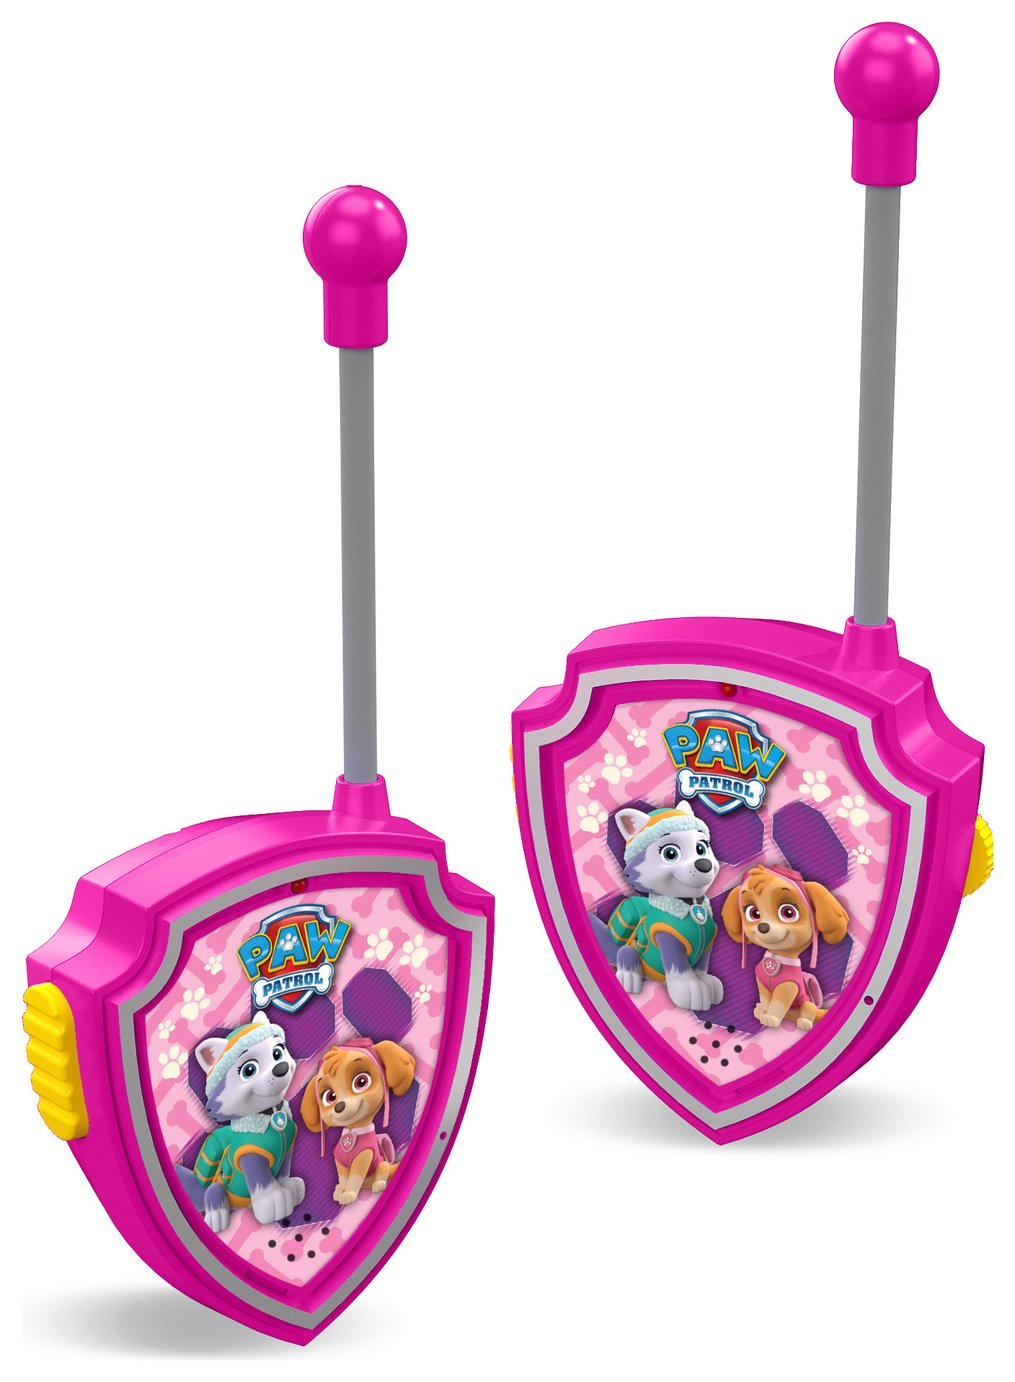 PAW Patrol Walkie Talkie Skye N Everest